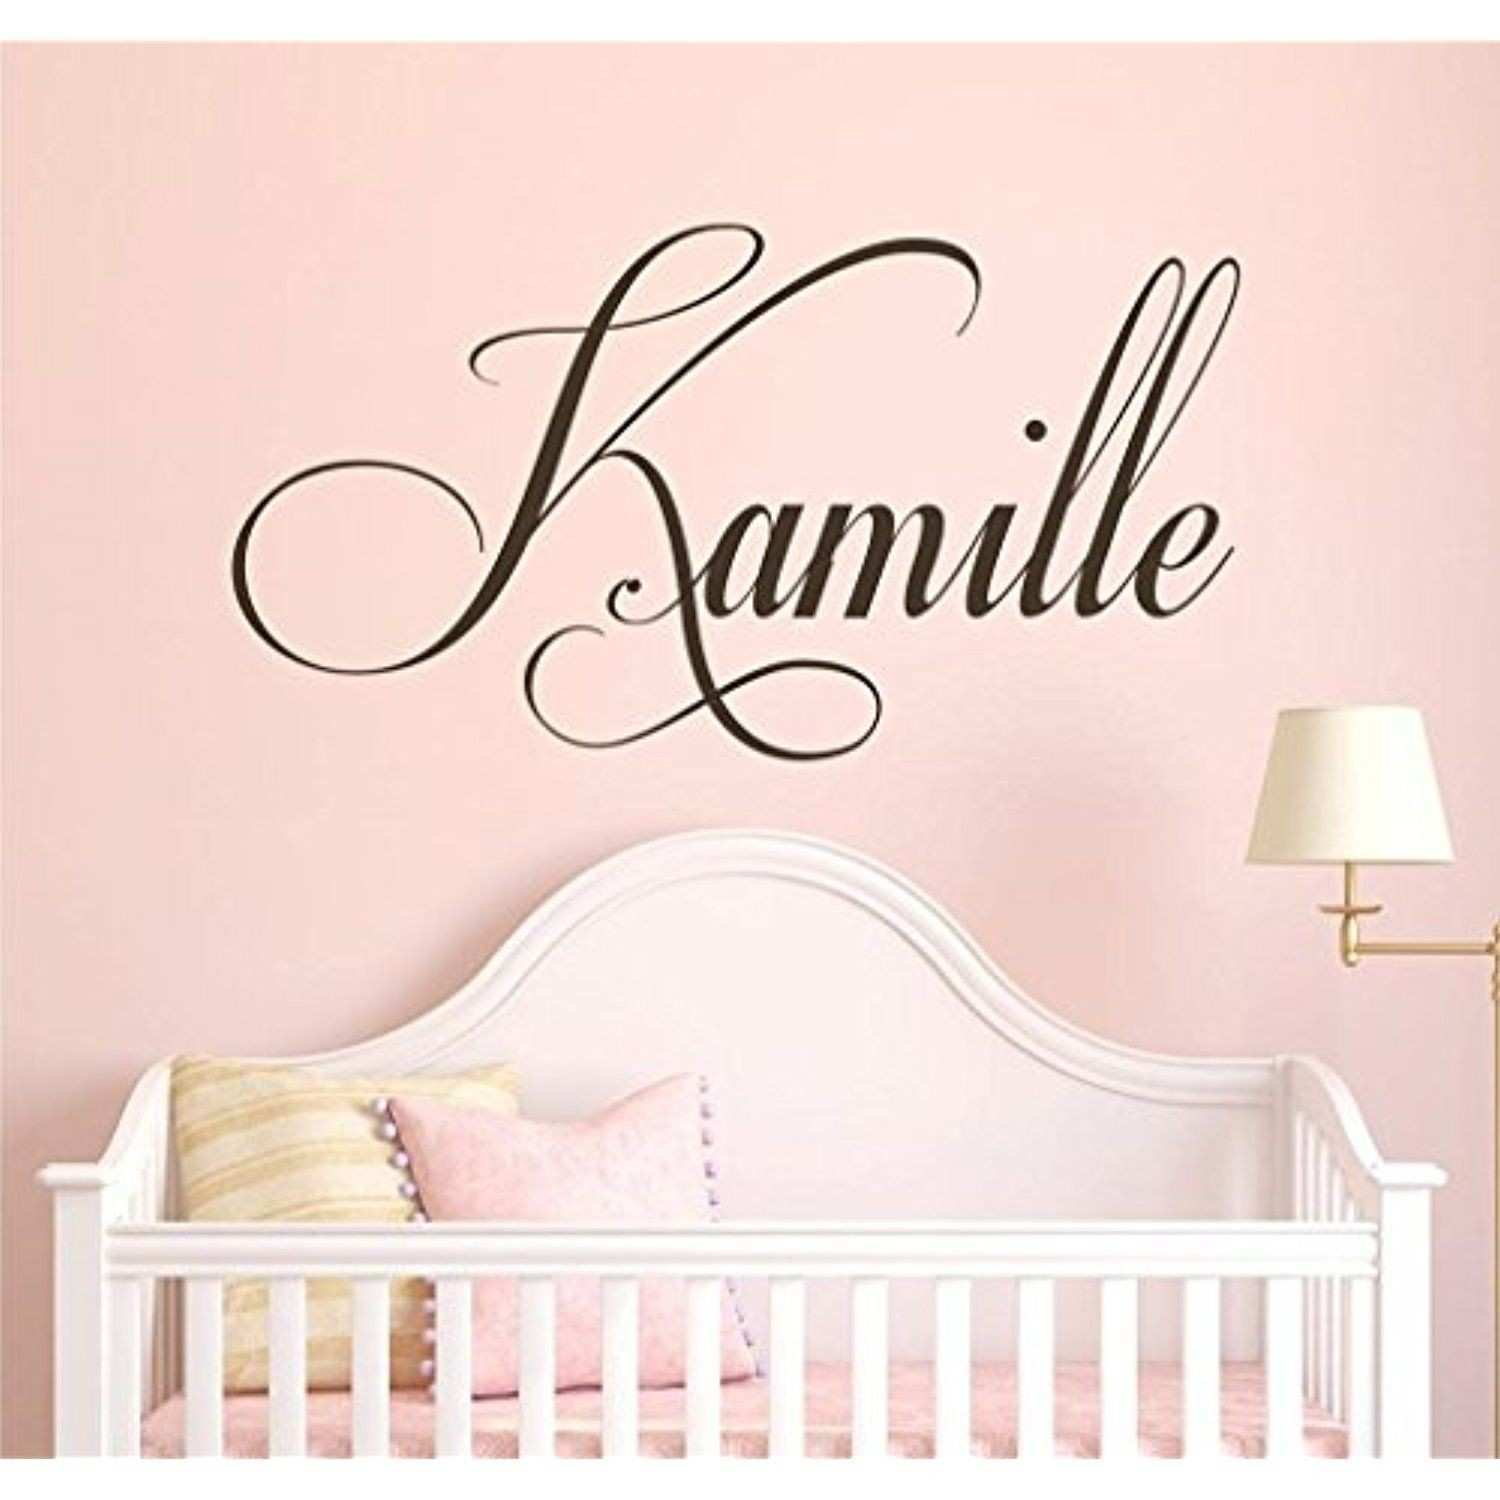 34 Elegant Personalized Wall Decals for Nursery